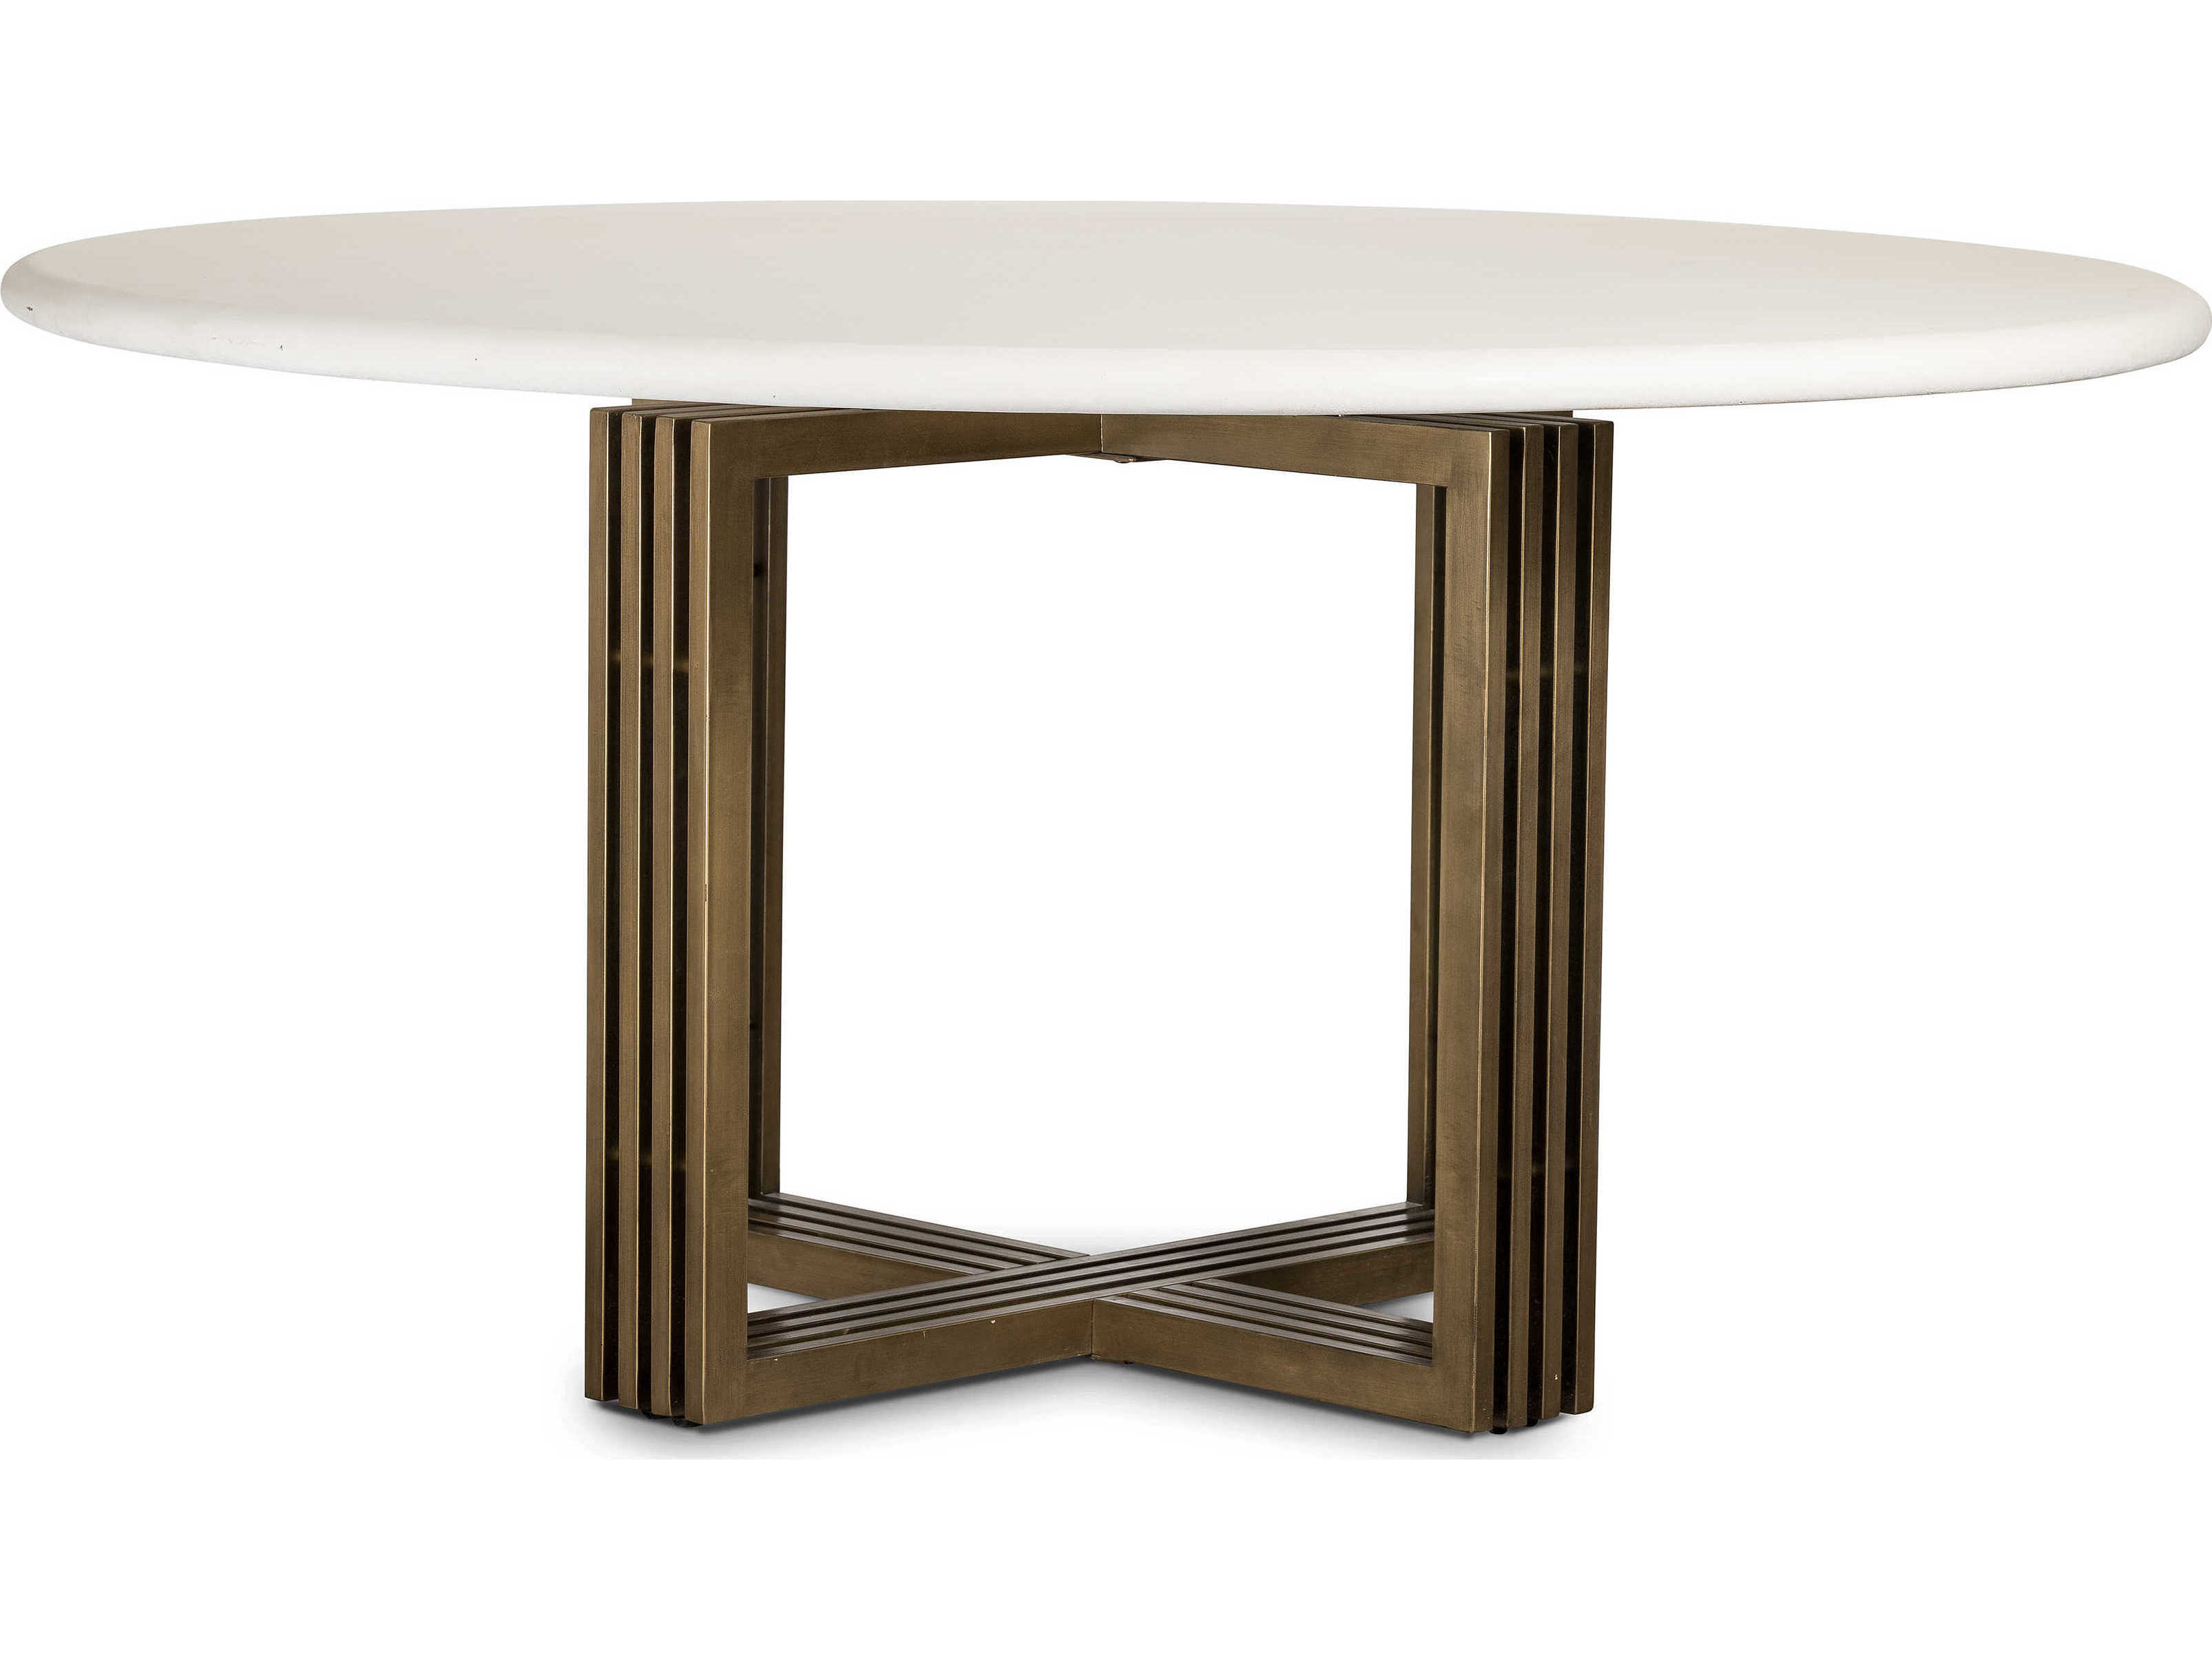 Enjoyable Four Hands Everett Antique Brass Parchment White 60 Wide Round Dining Table Gmtry Best Dining Table And Chair Ideas Images Gmtryco